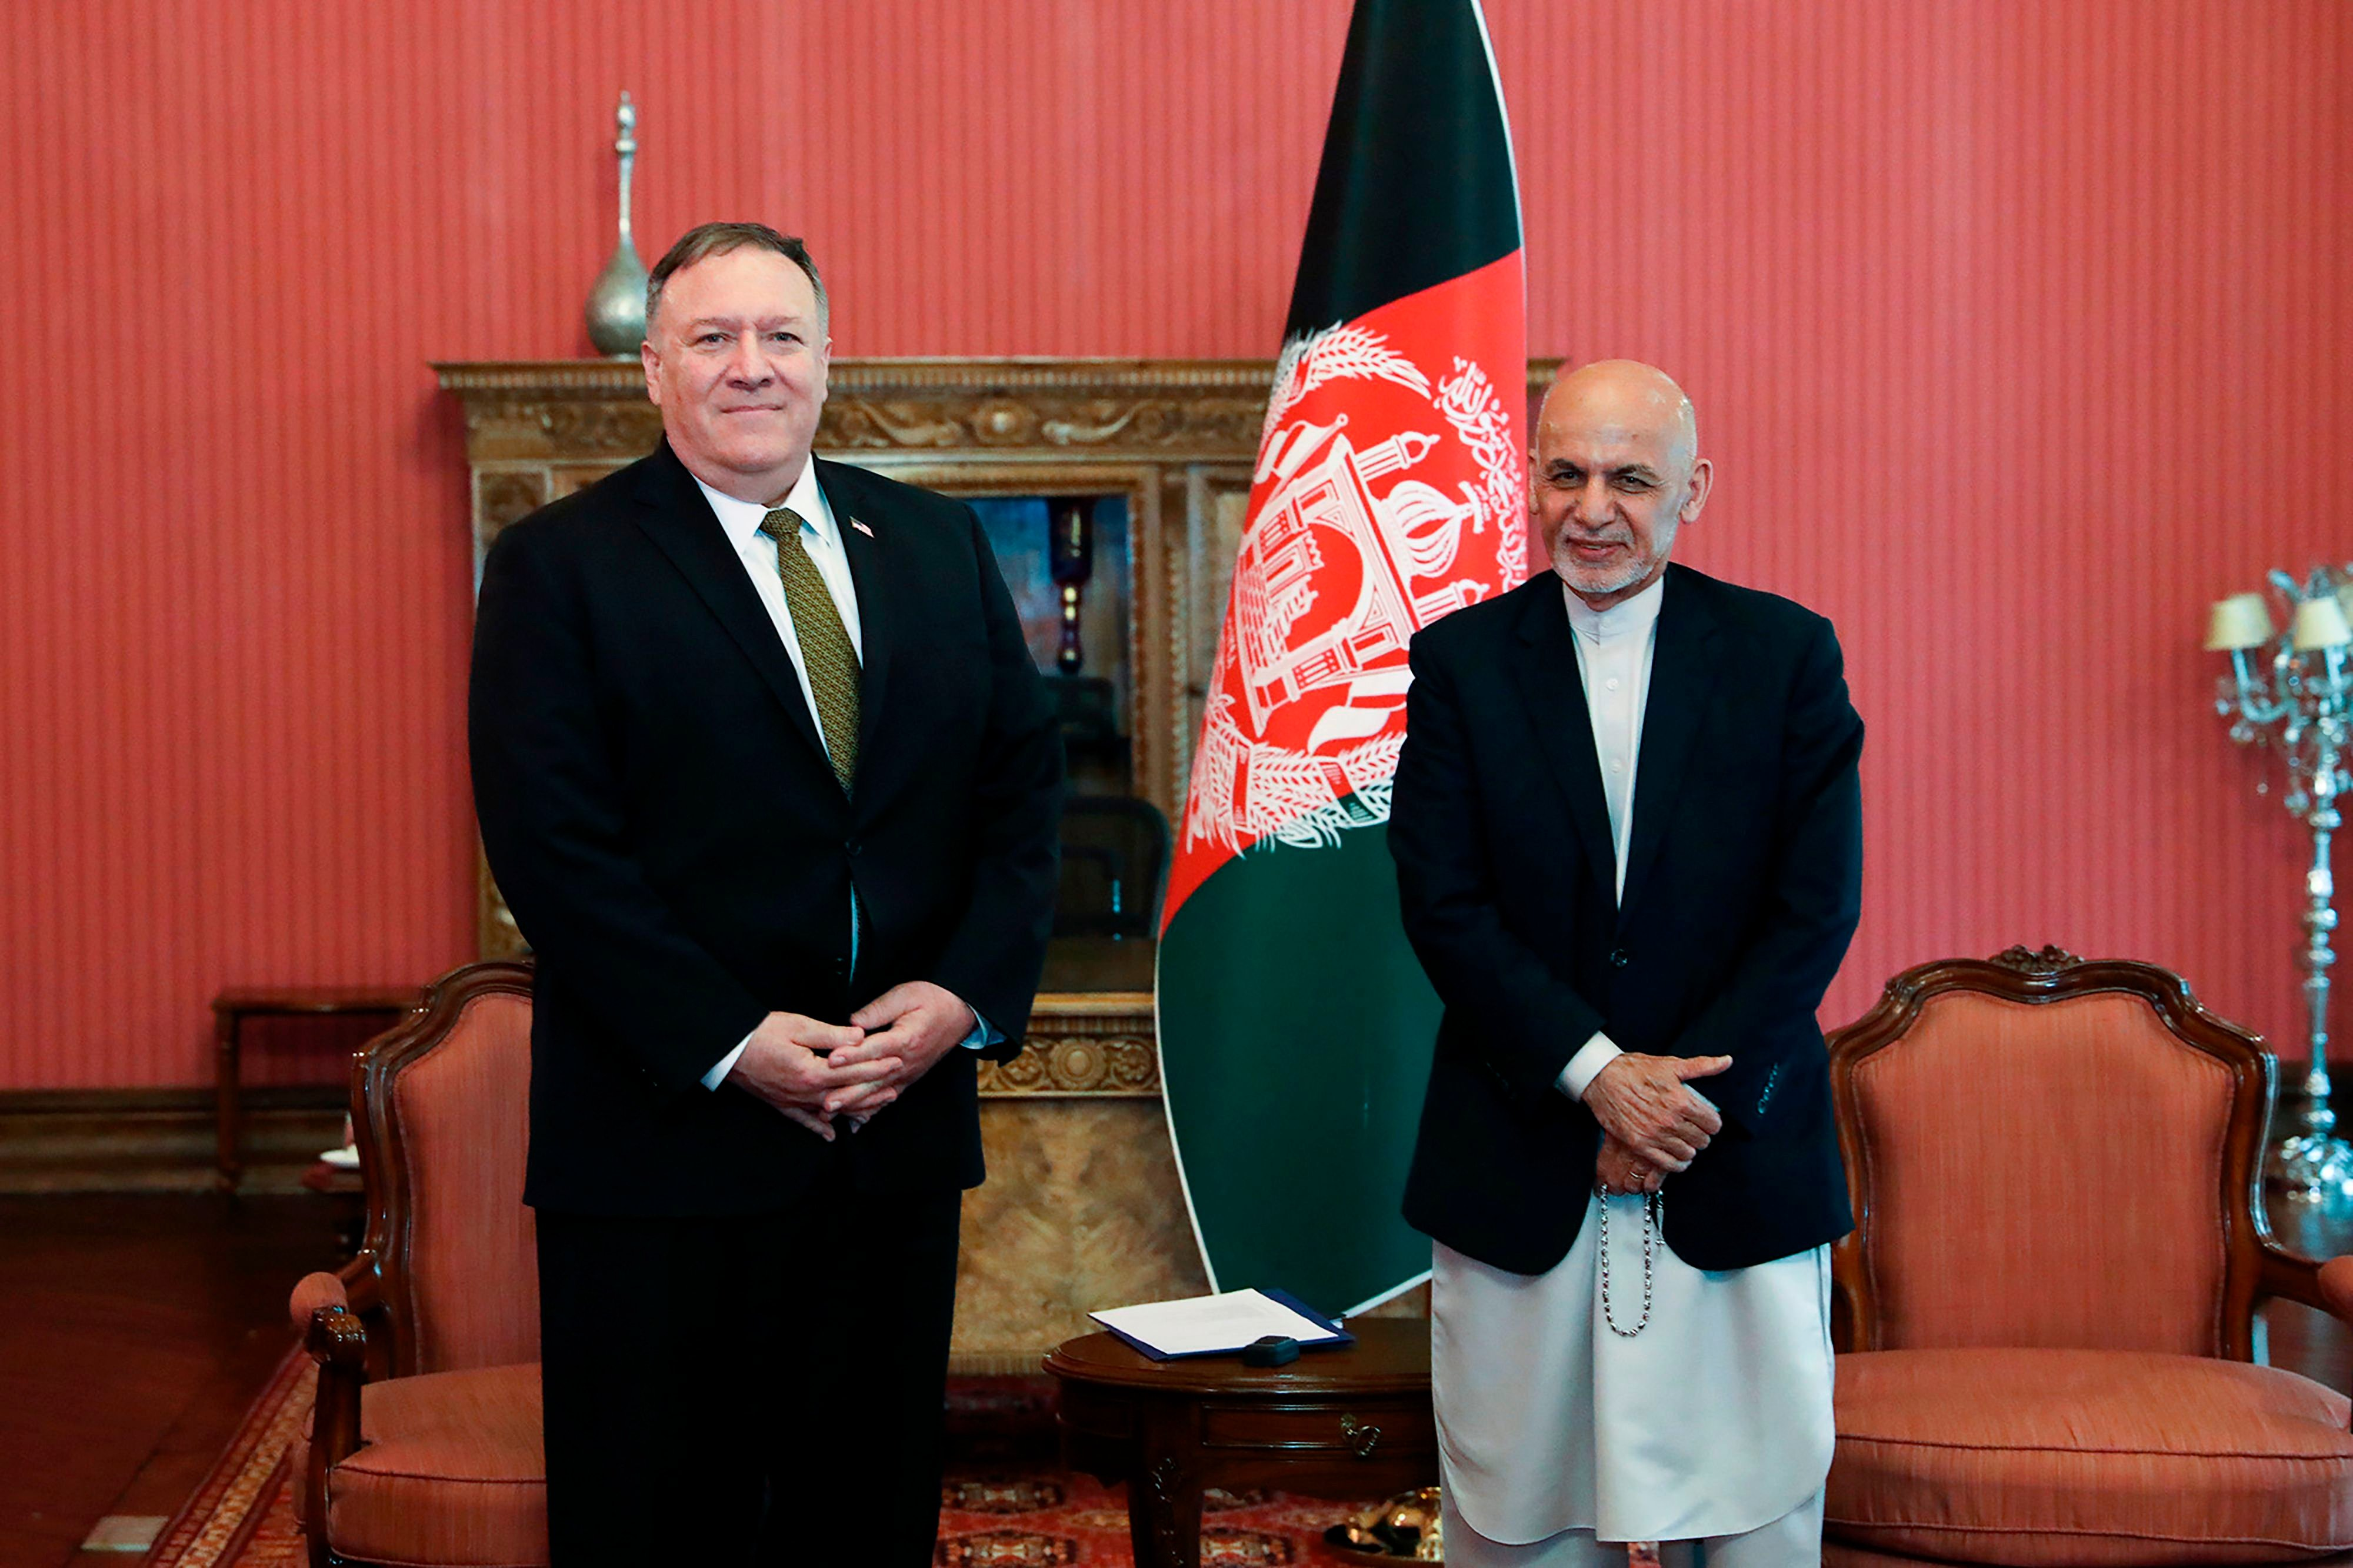 Afghanistan's President Ashraf Ghani poses for a picture with US Secretary of State Mike Pompeo (L) during their meeting in Kabul,  Monday, March 23, 2020. (AFP)